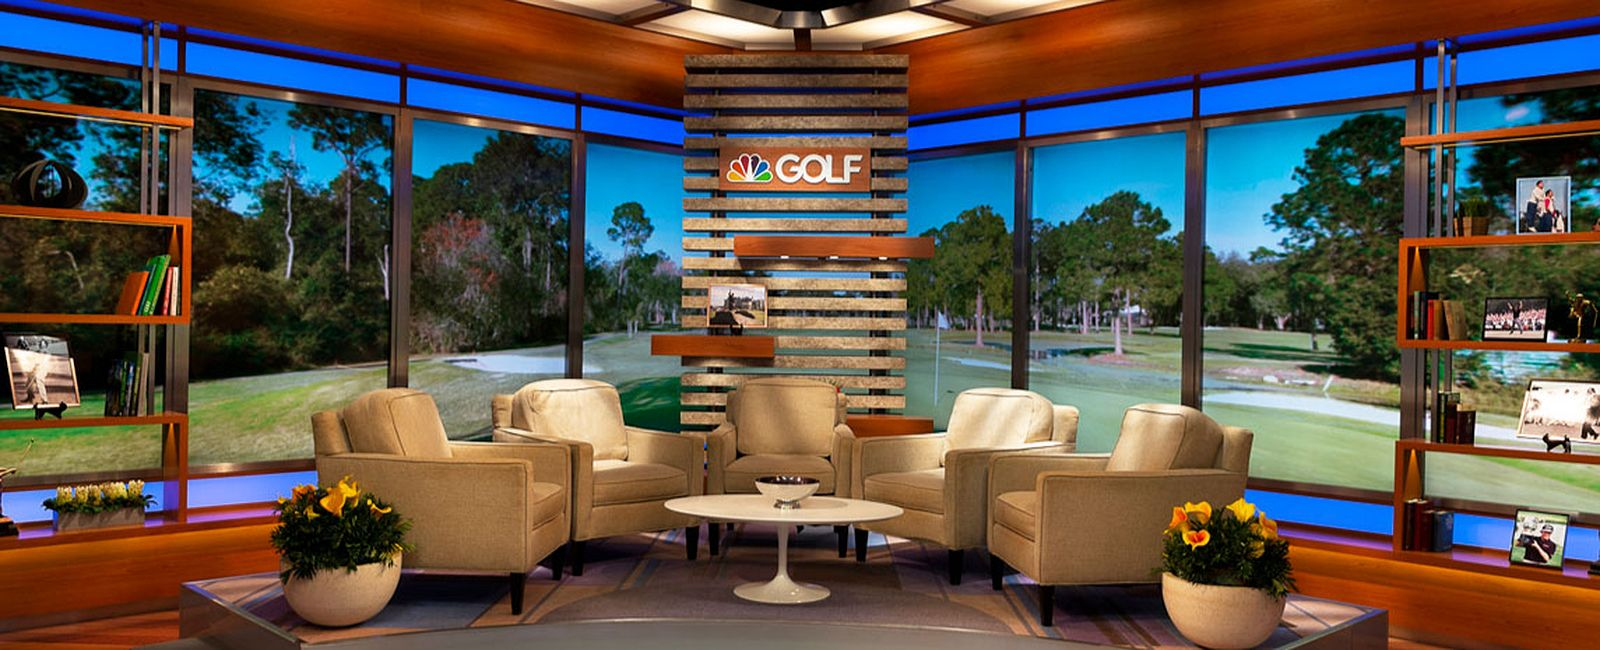 golf-channel-morning-drive-fan-experience